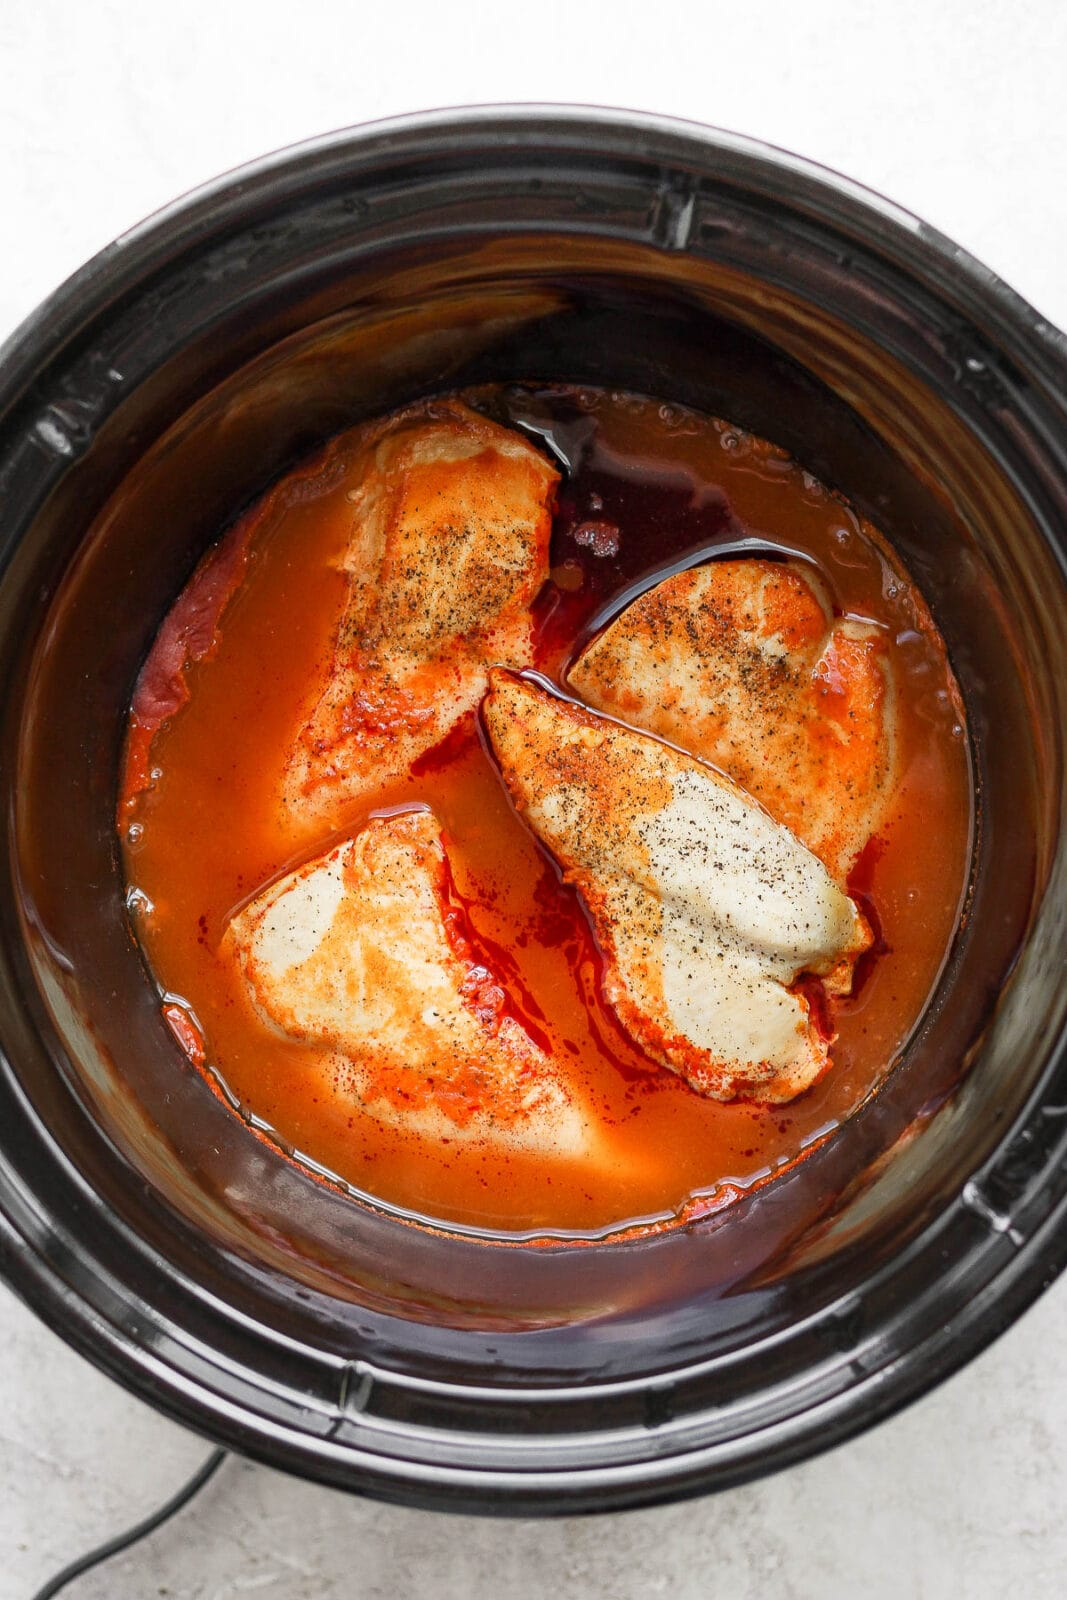 Slow cooker with cooked breasts in buffalo sauce.